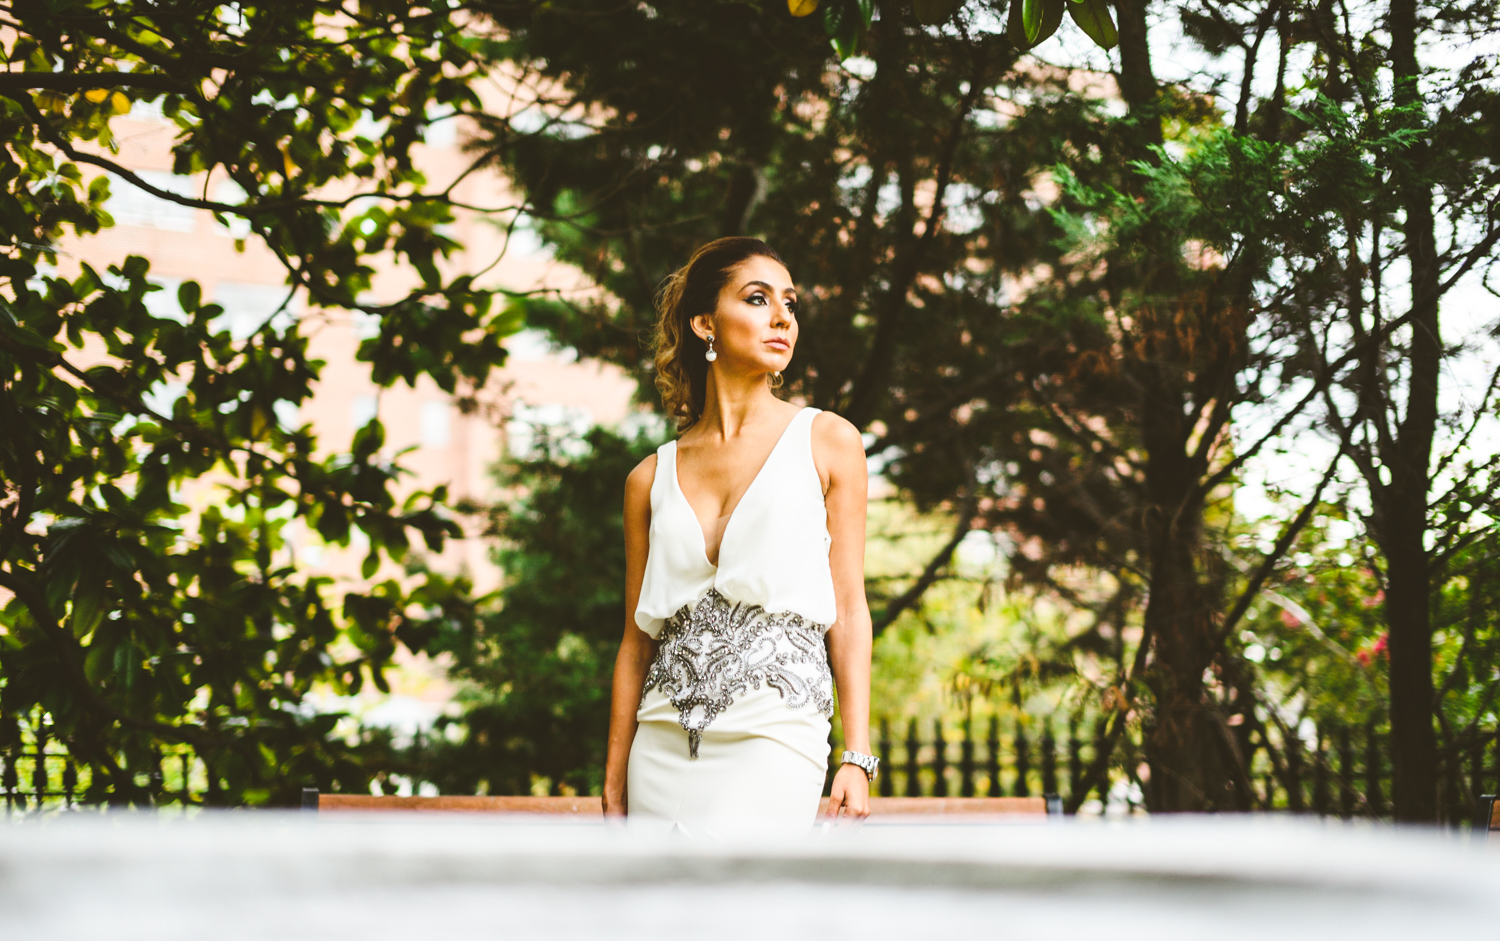 001 - bride to be poses for a portrait outdoors - richmond wedding photographer nathan mitchell.jpg